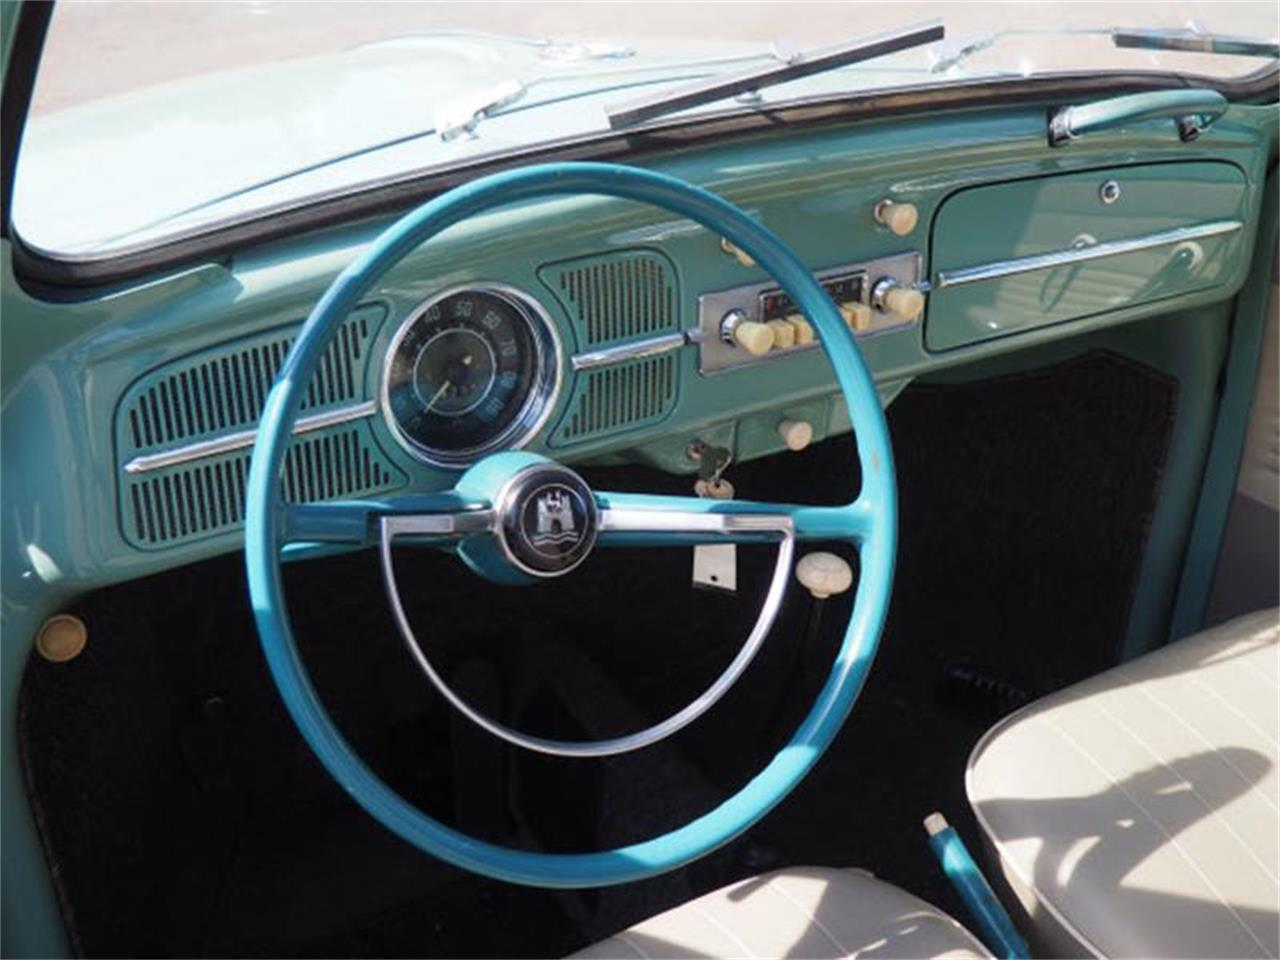 Large Picture of Classic '61 Volkswagen Beetle located in Ohio - $19,999.00 - MBMH